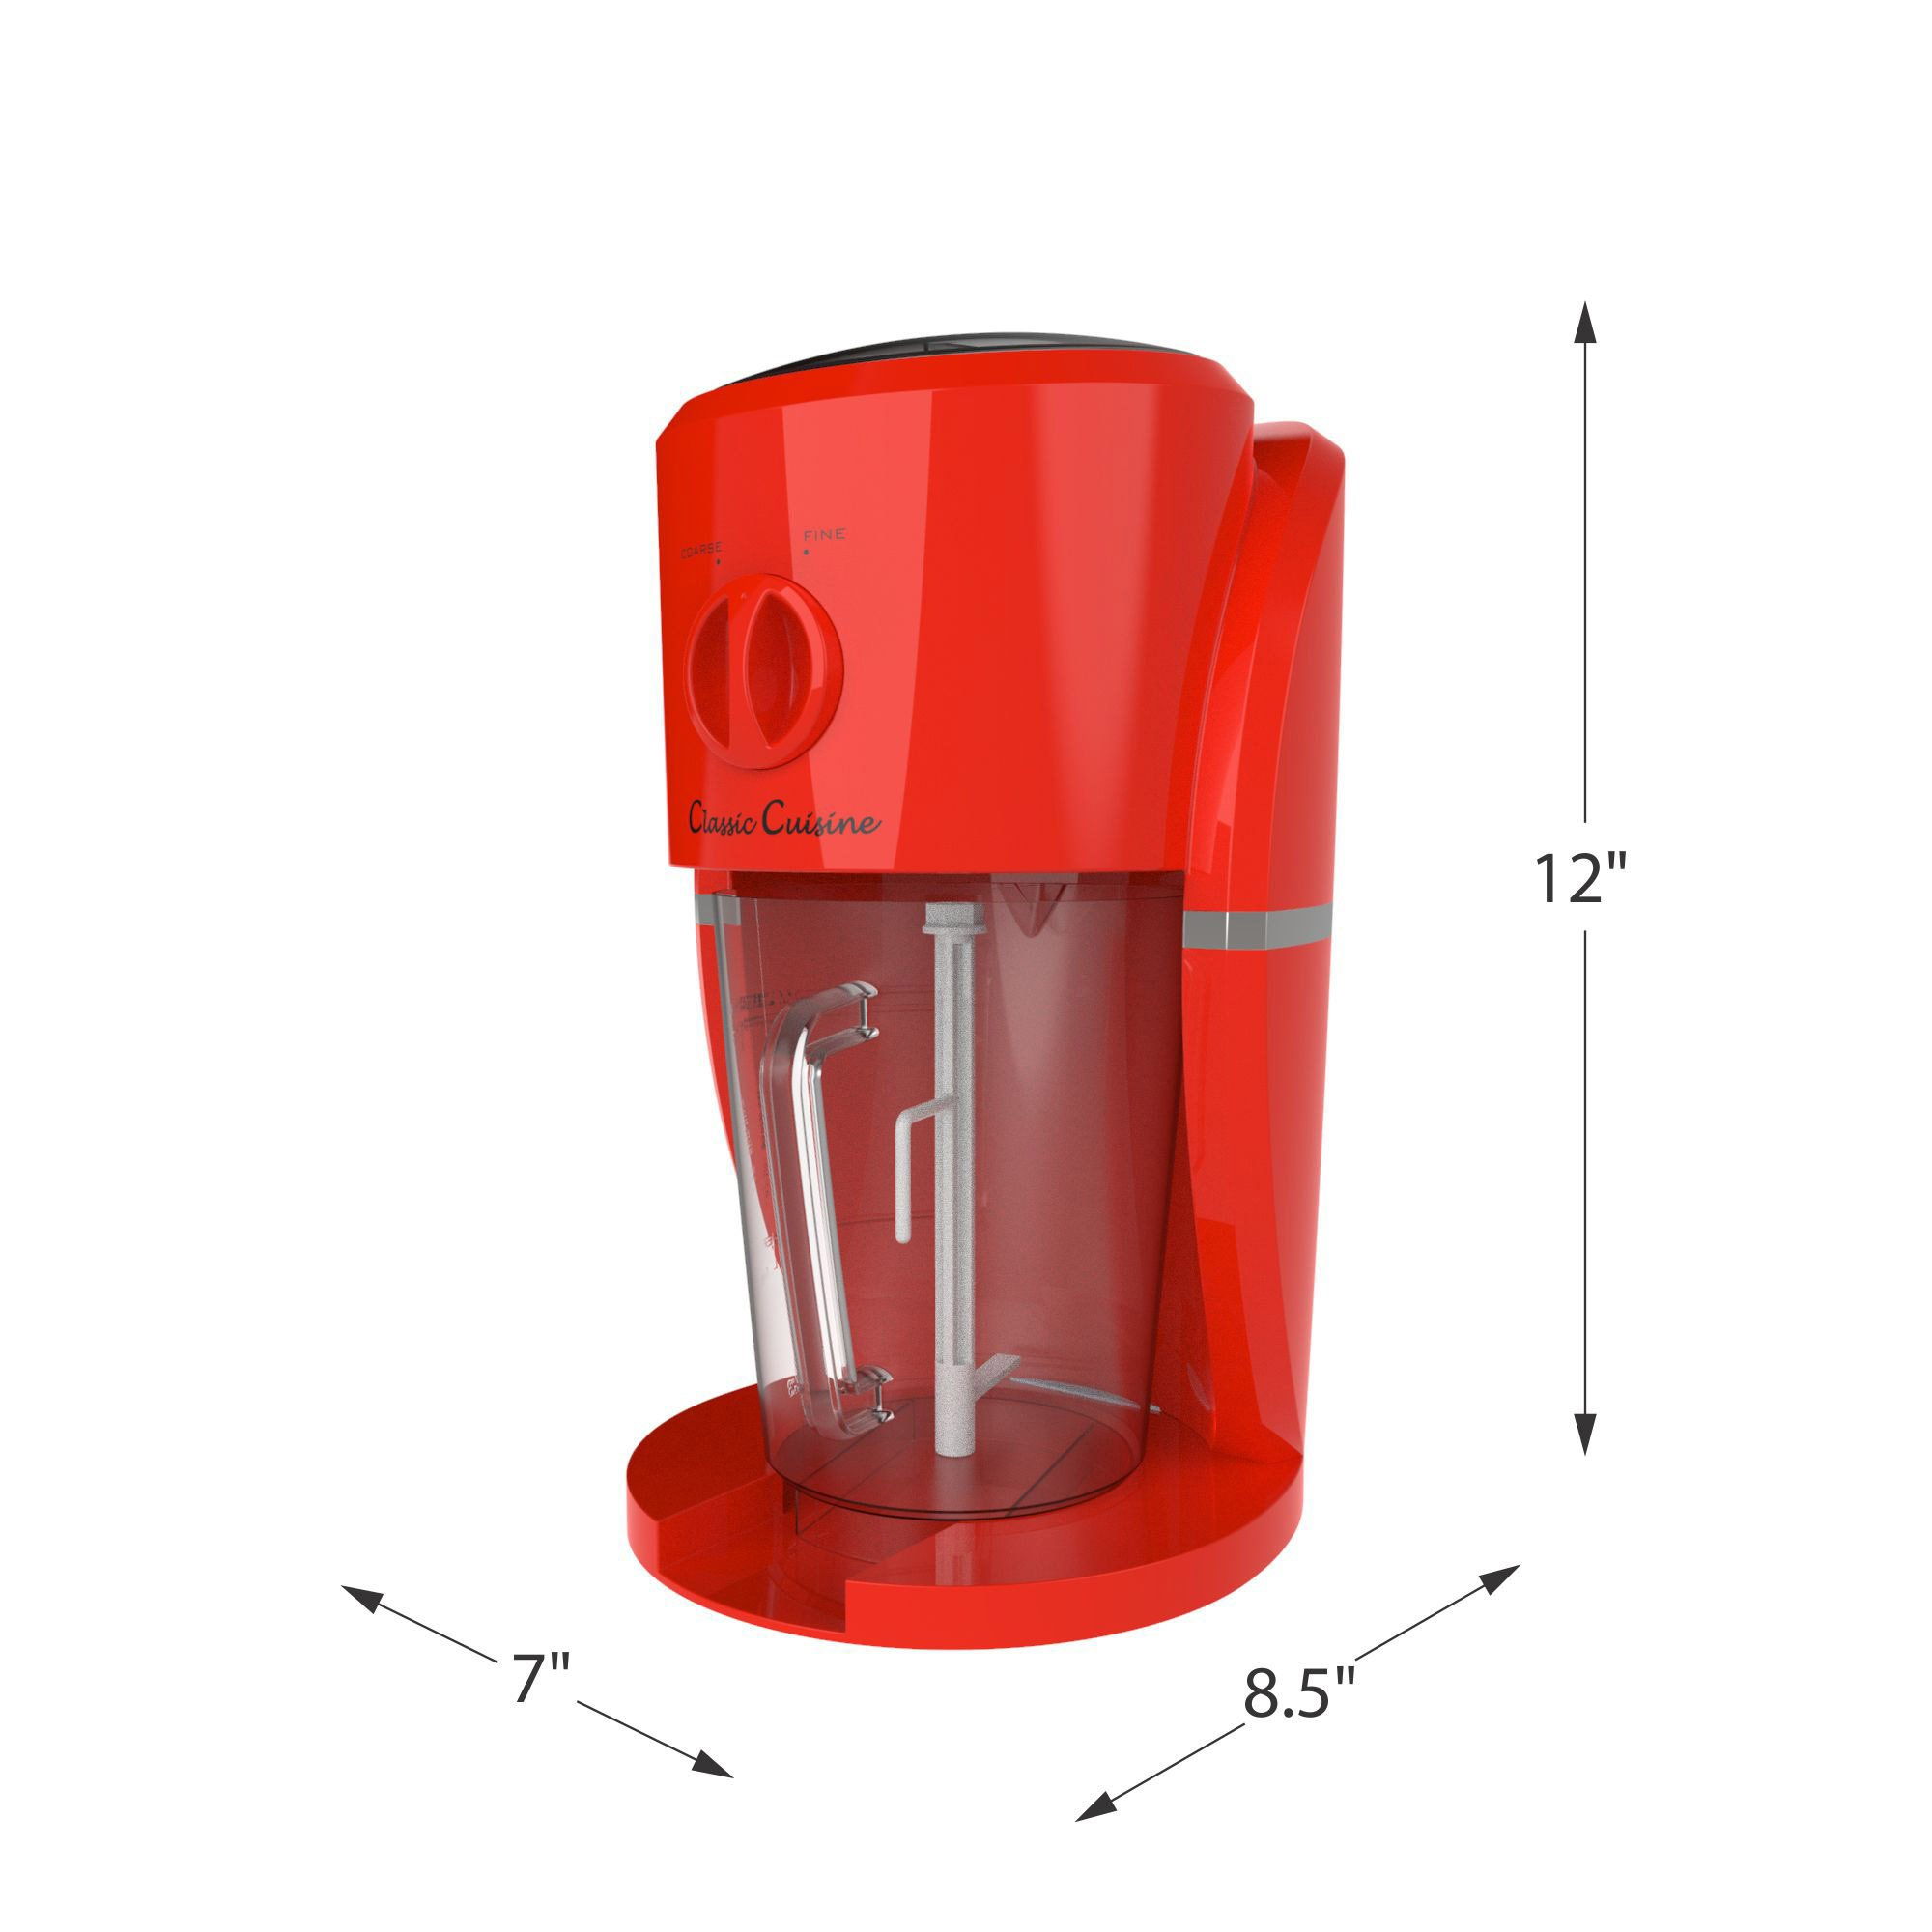 Frozen Drink Maker, Mixer and Ice Crusher Machine for Margaritas, Pina Coladas, Daiquiris, Shaved Ice Treats or Slushy Desserts by Classic Cuisine by Classic Cuisine (Image #1)